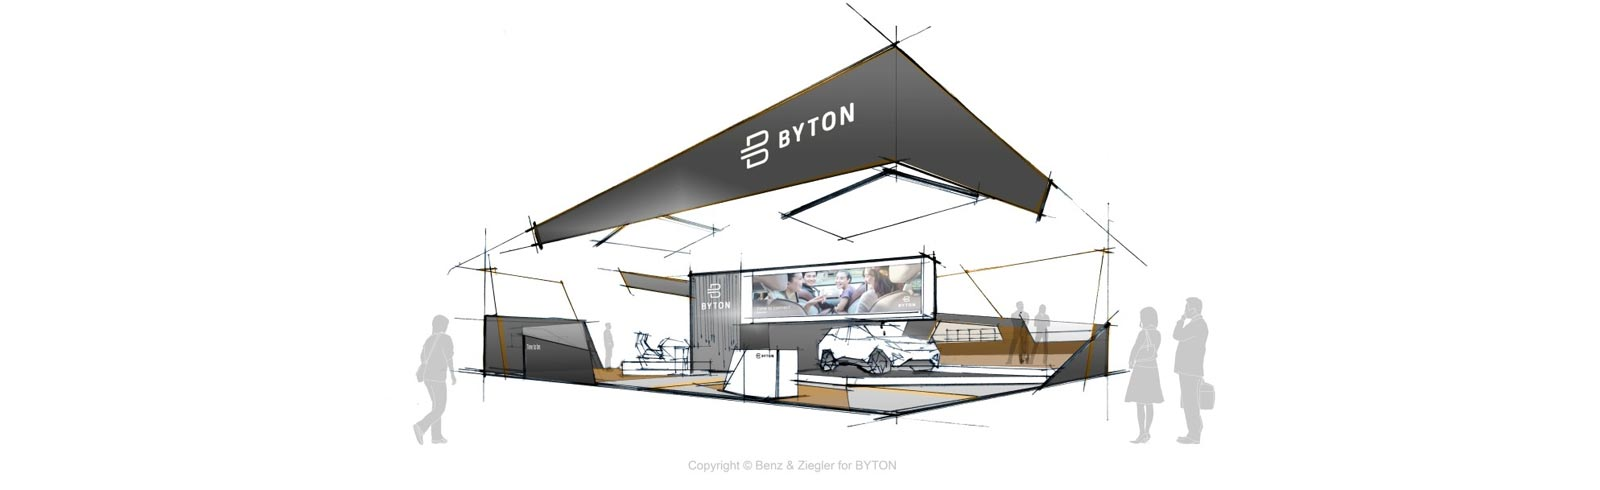 Byton M-Byte will be presented on September 10th at the IAA 2019 in Frankfurt